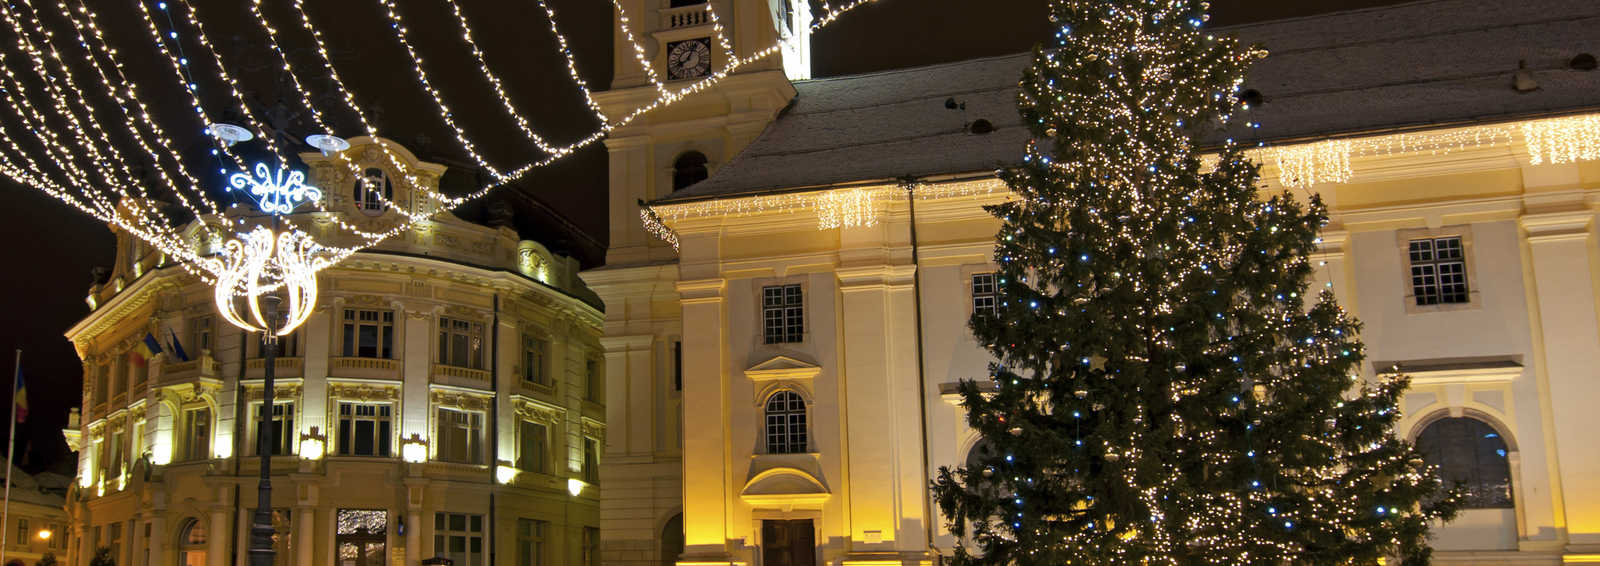 Christmas tree and lights in old town square, Romania